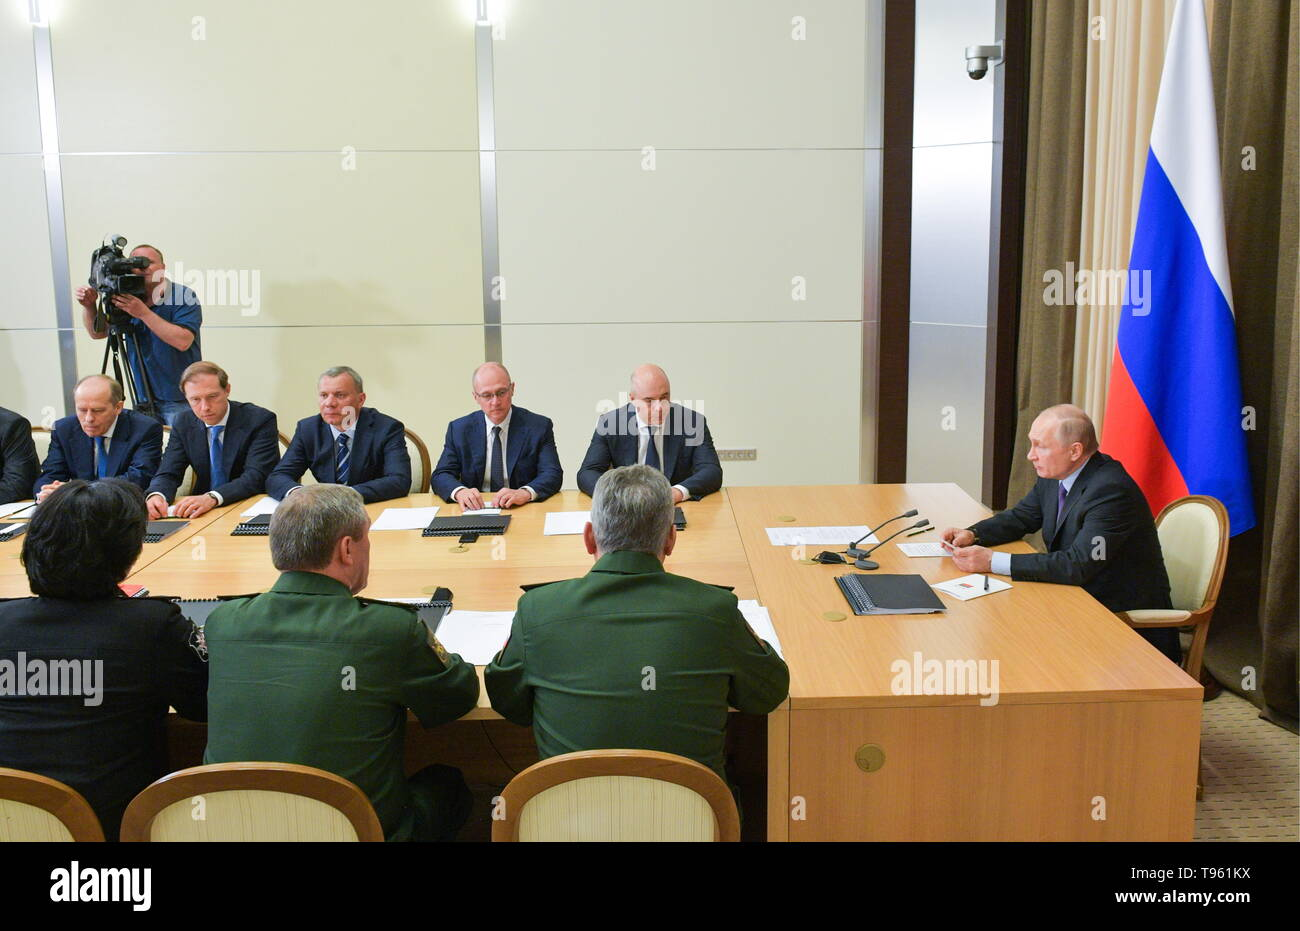 Sochi, Russia. 17th May, 2019. SOCHI, RUSSIA - MAY 17, 2019: Russia's President Vladimir Putin (R) holds a meeting at Bocharov Ruchei residence to discuss development prospects for the Russian Aerospace Forces. Alexei Druzhinin/Russian Presidential Press and Information Office/TASS Credit: ITAR-TASS News Agency/Alamy Live News Stock Photo